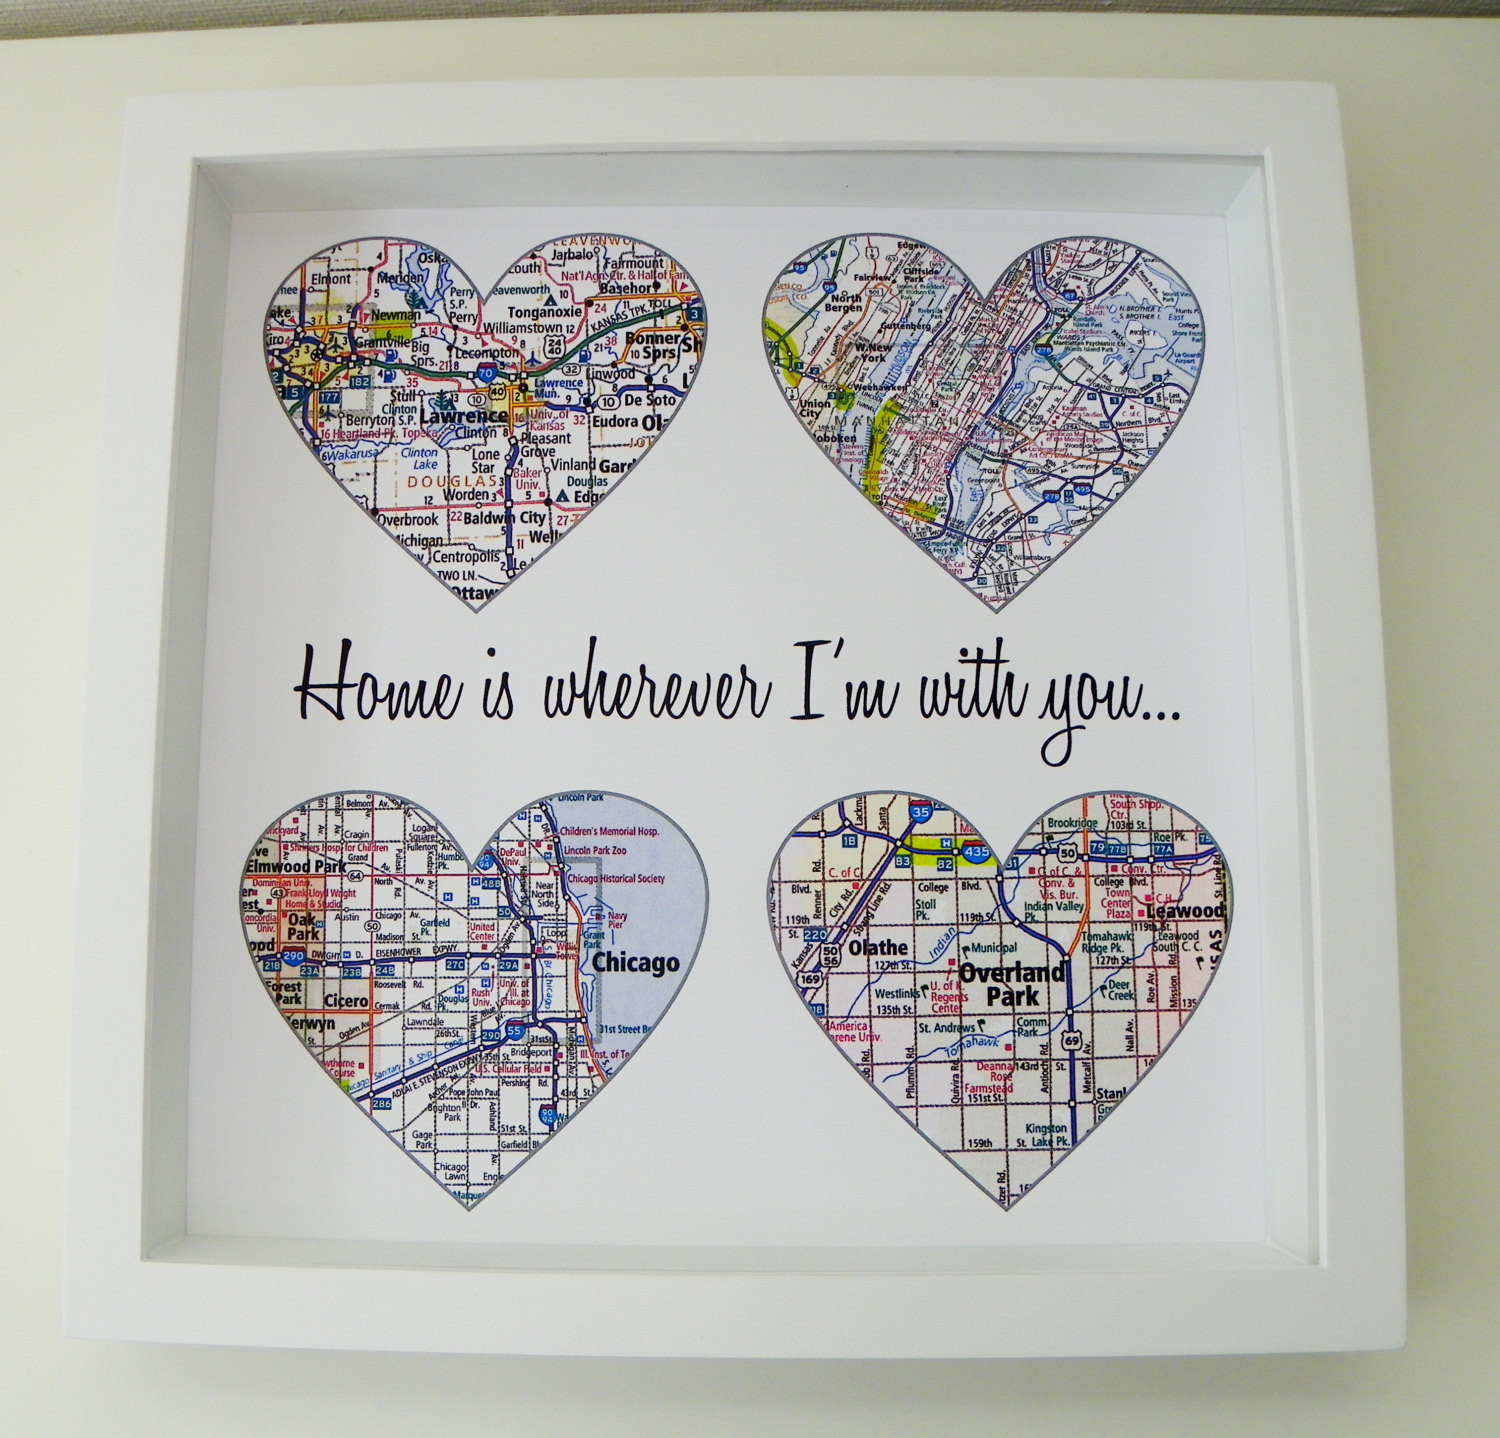 Best ideas about Personalized Wedding Gift Ideas . Save or Pin Heart Map Art Personalized Engagement Gift Unique Wedding Gift Now.